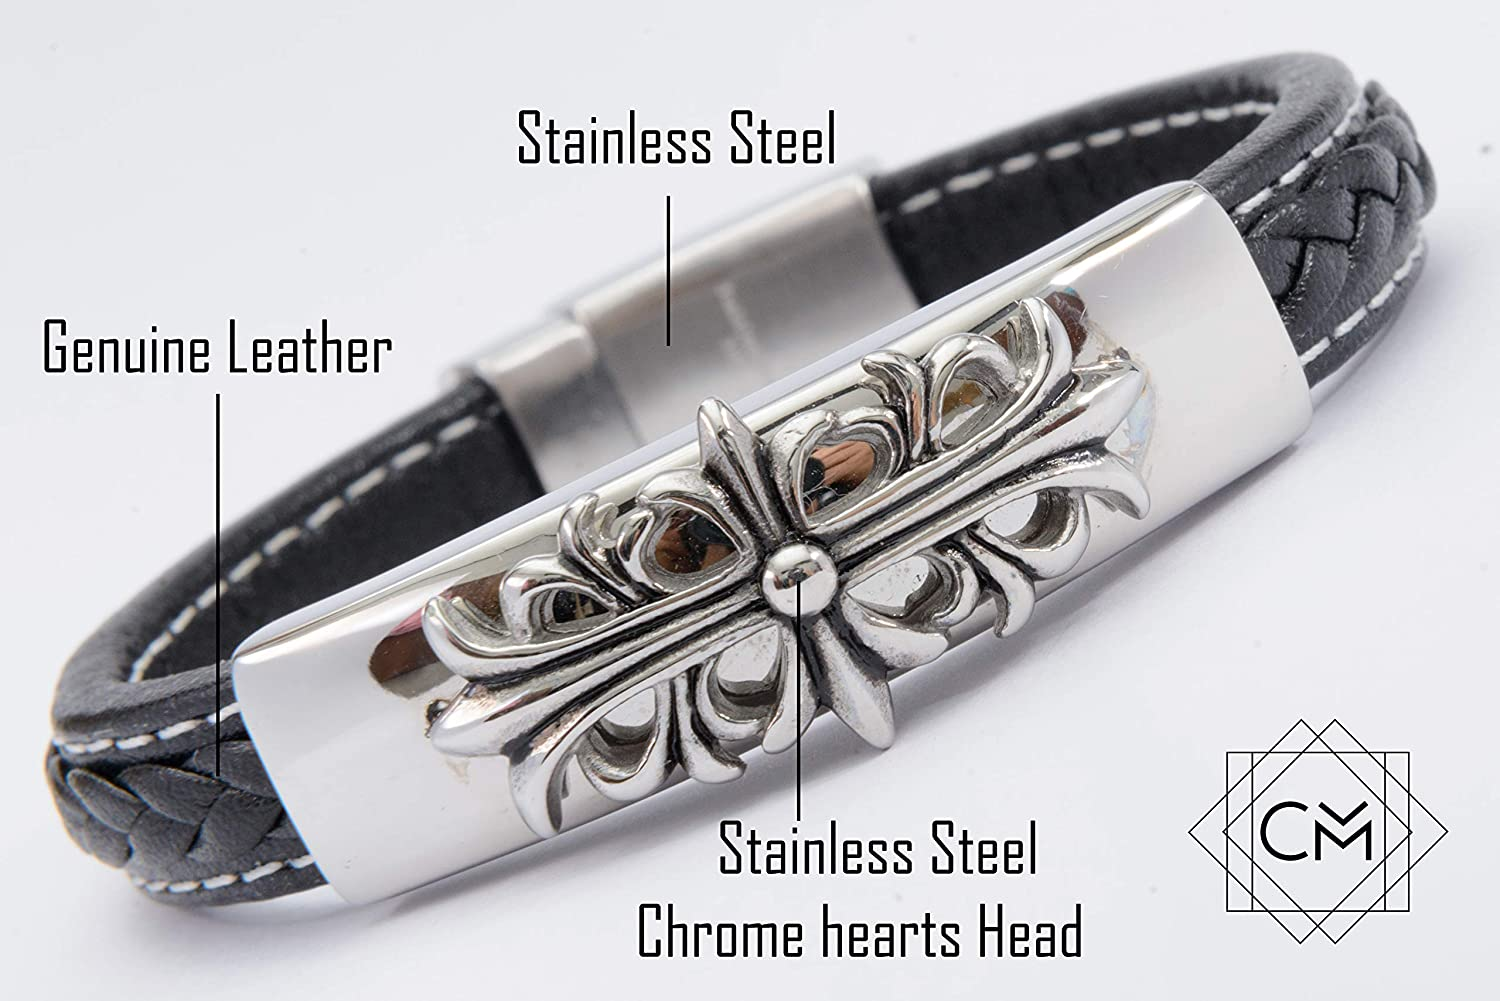 6823e1ae808f Amazon.com  Charming Leather Bracelet with Stainless Steel Chrome Hearts  Head  Jewelry